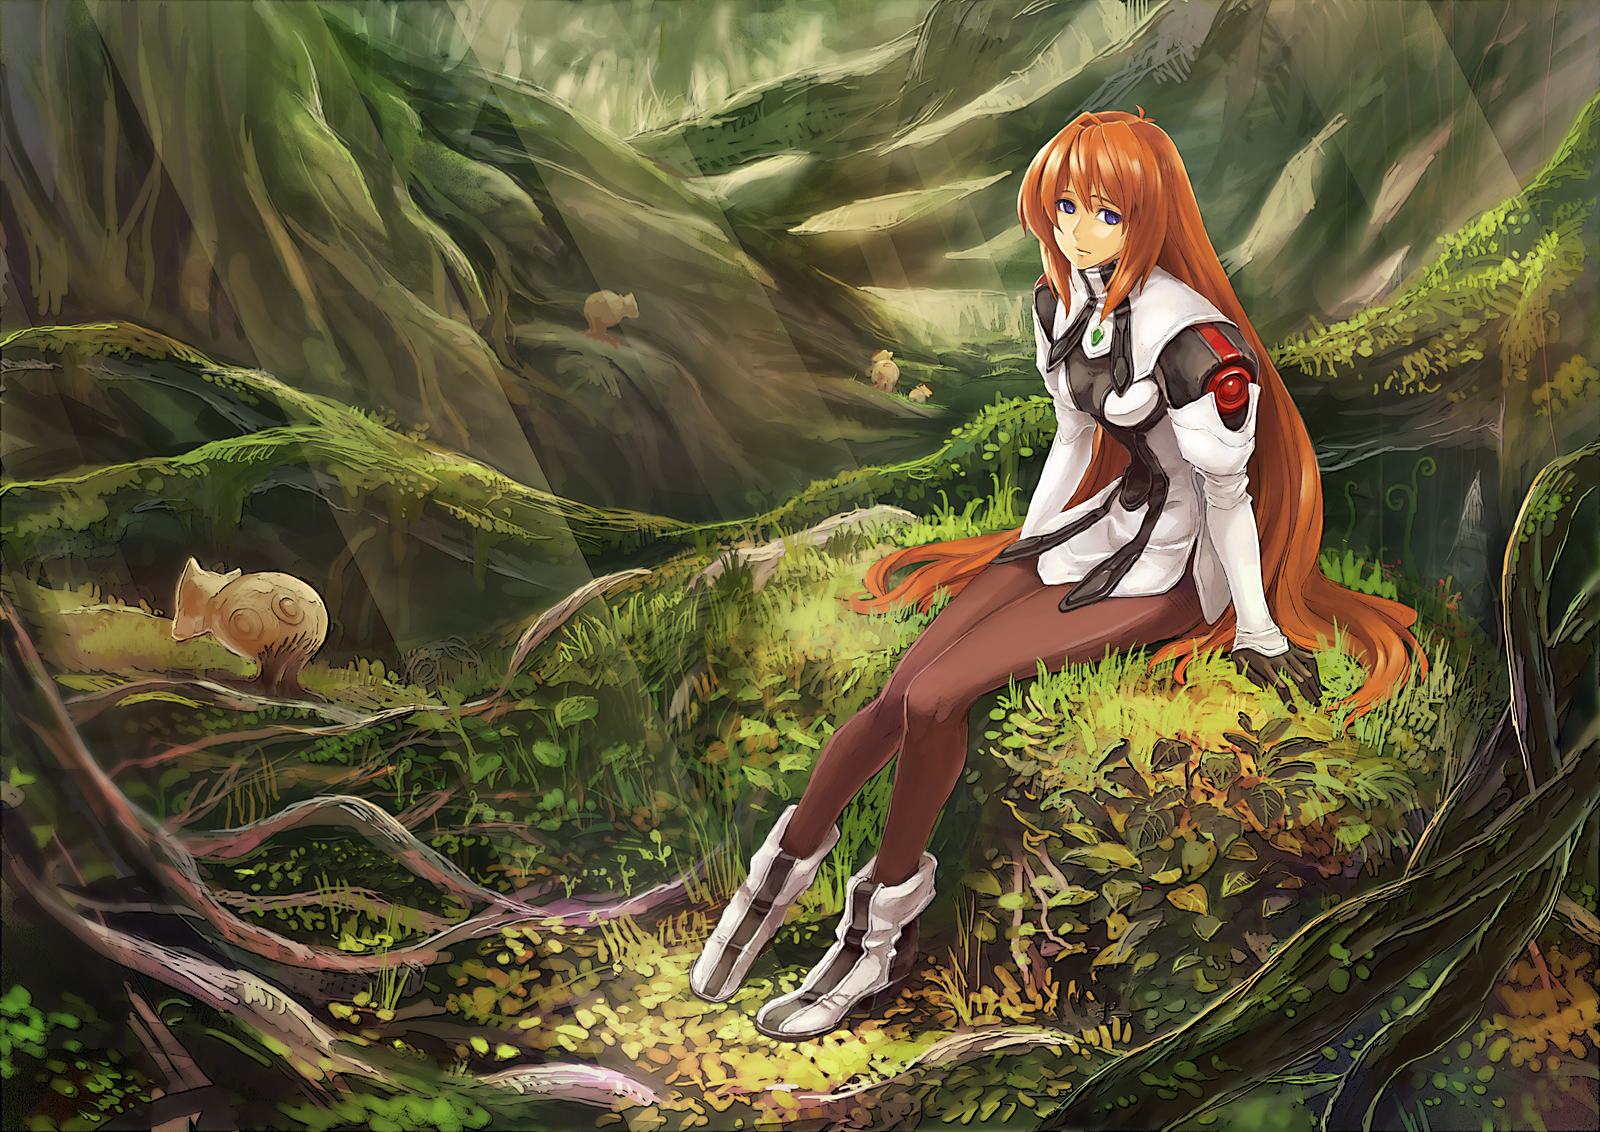 elehaym van houten guchico xenogears wallpaper backgroundXenogears Wallpaper